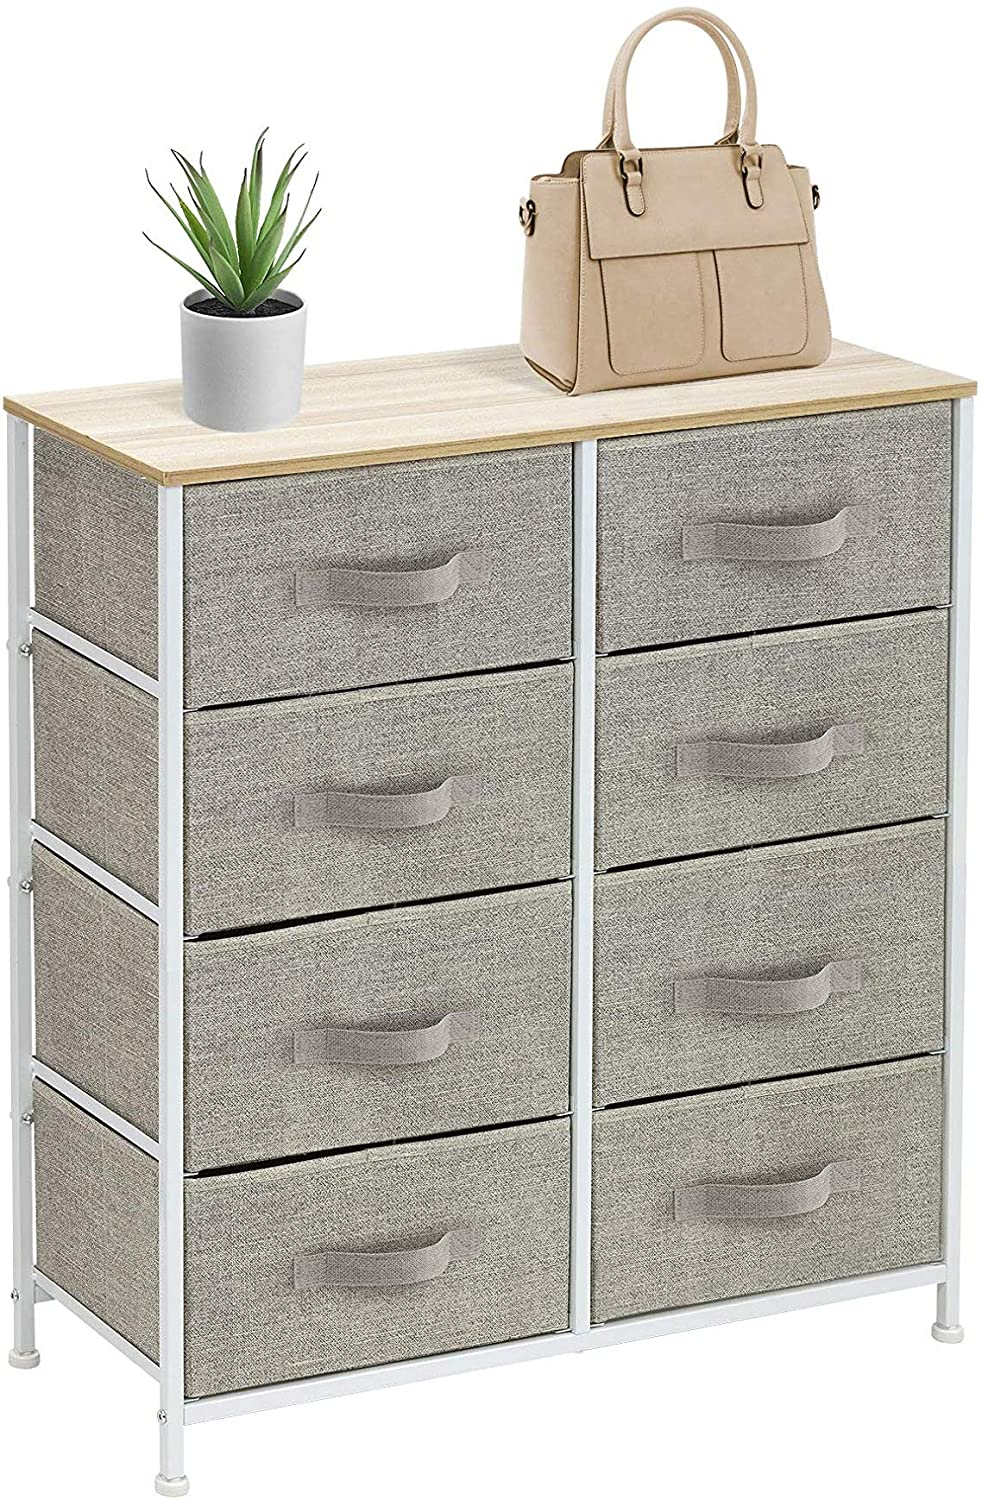 Sorbus Dresser with 8 Drawers - Furniture Storage Chest Tower Unit for Bedroom, Hallway, Closet, Office Organization - Steel Frame, Wood Top, Easy Pull Fabric Bins (Beige)